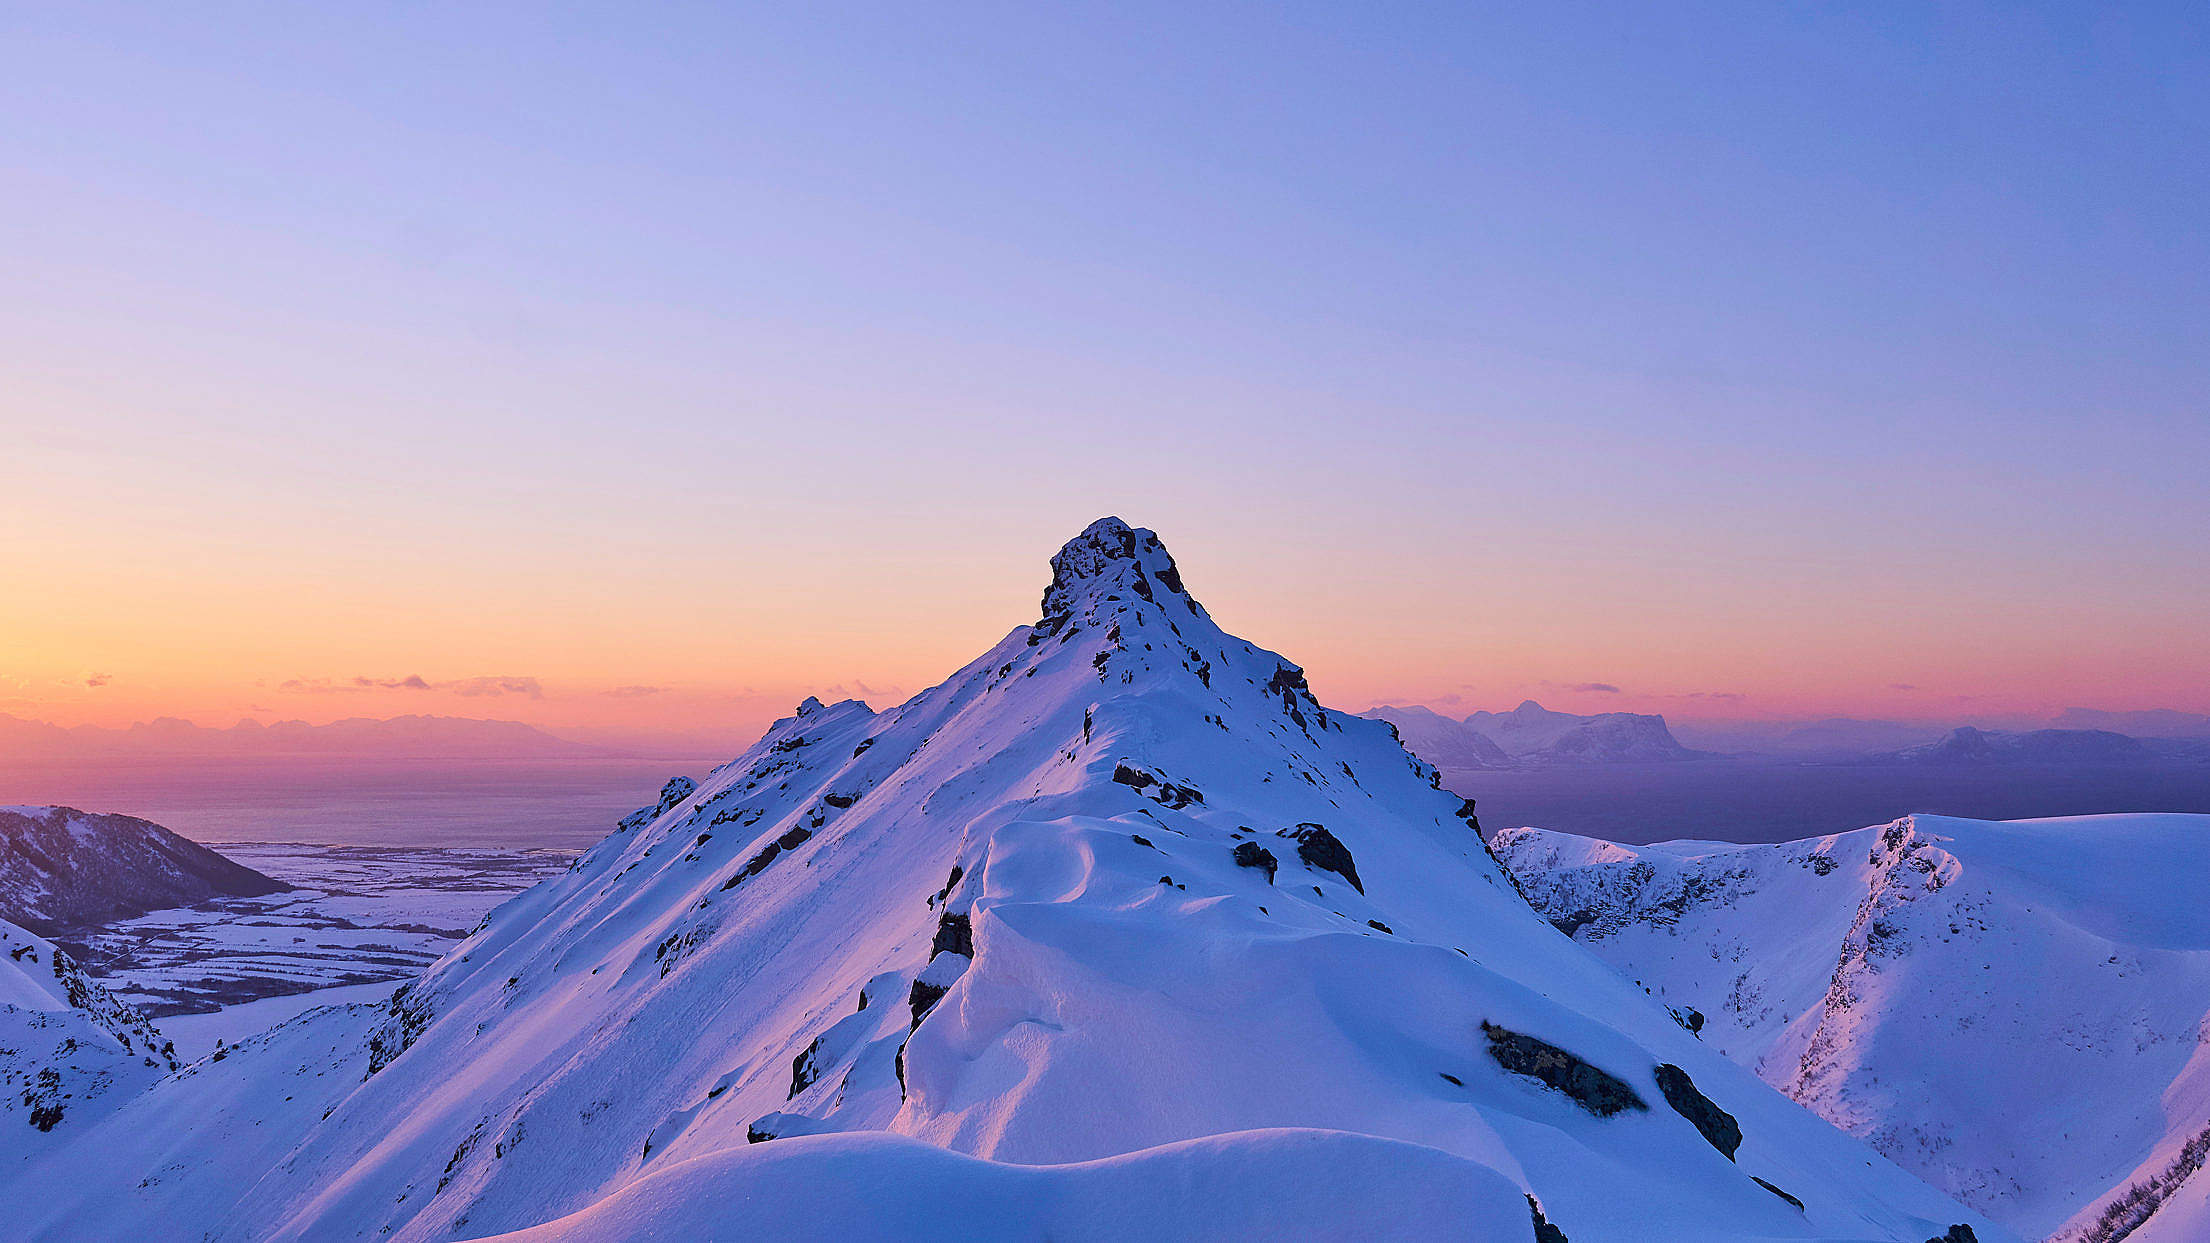 Snowy Mountain Peak with Sunrise Glow Free Stock Photo